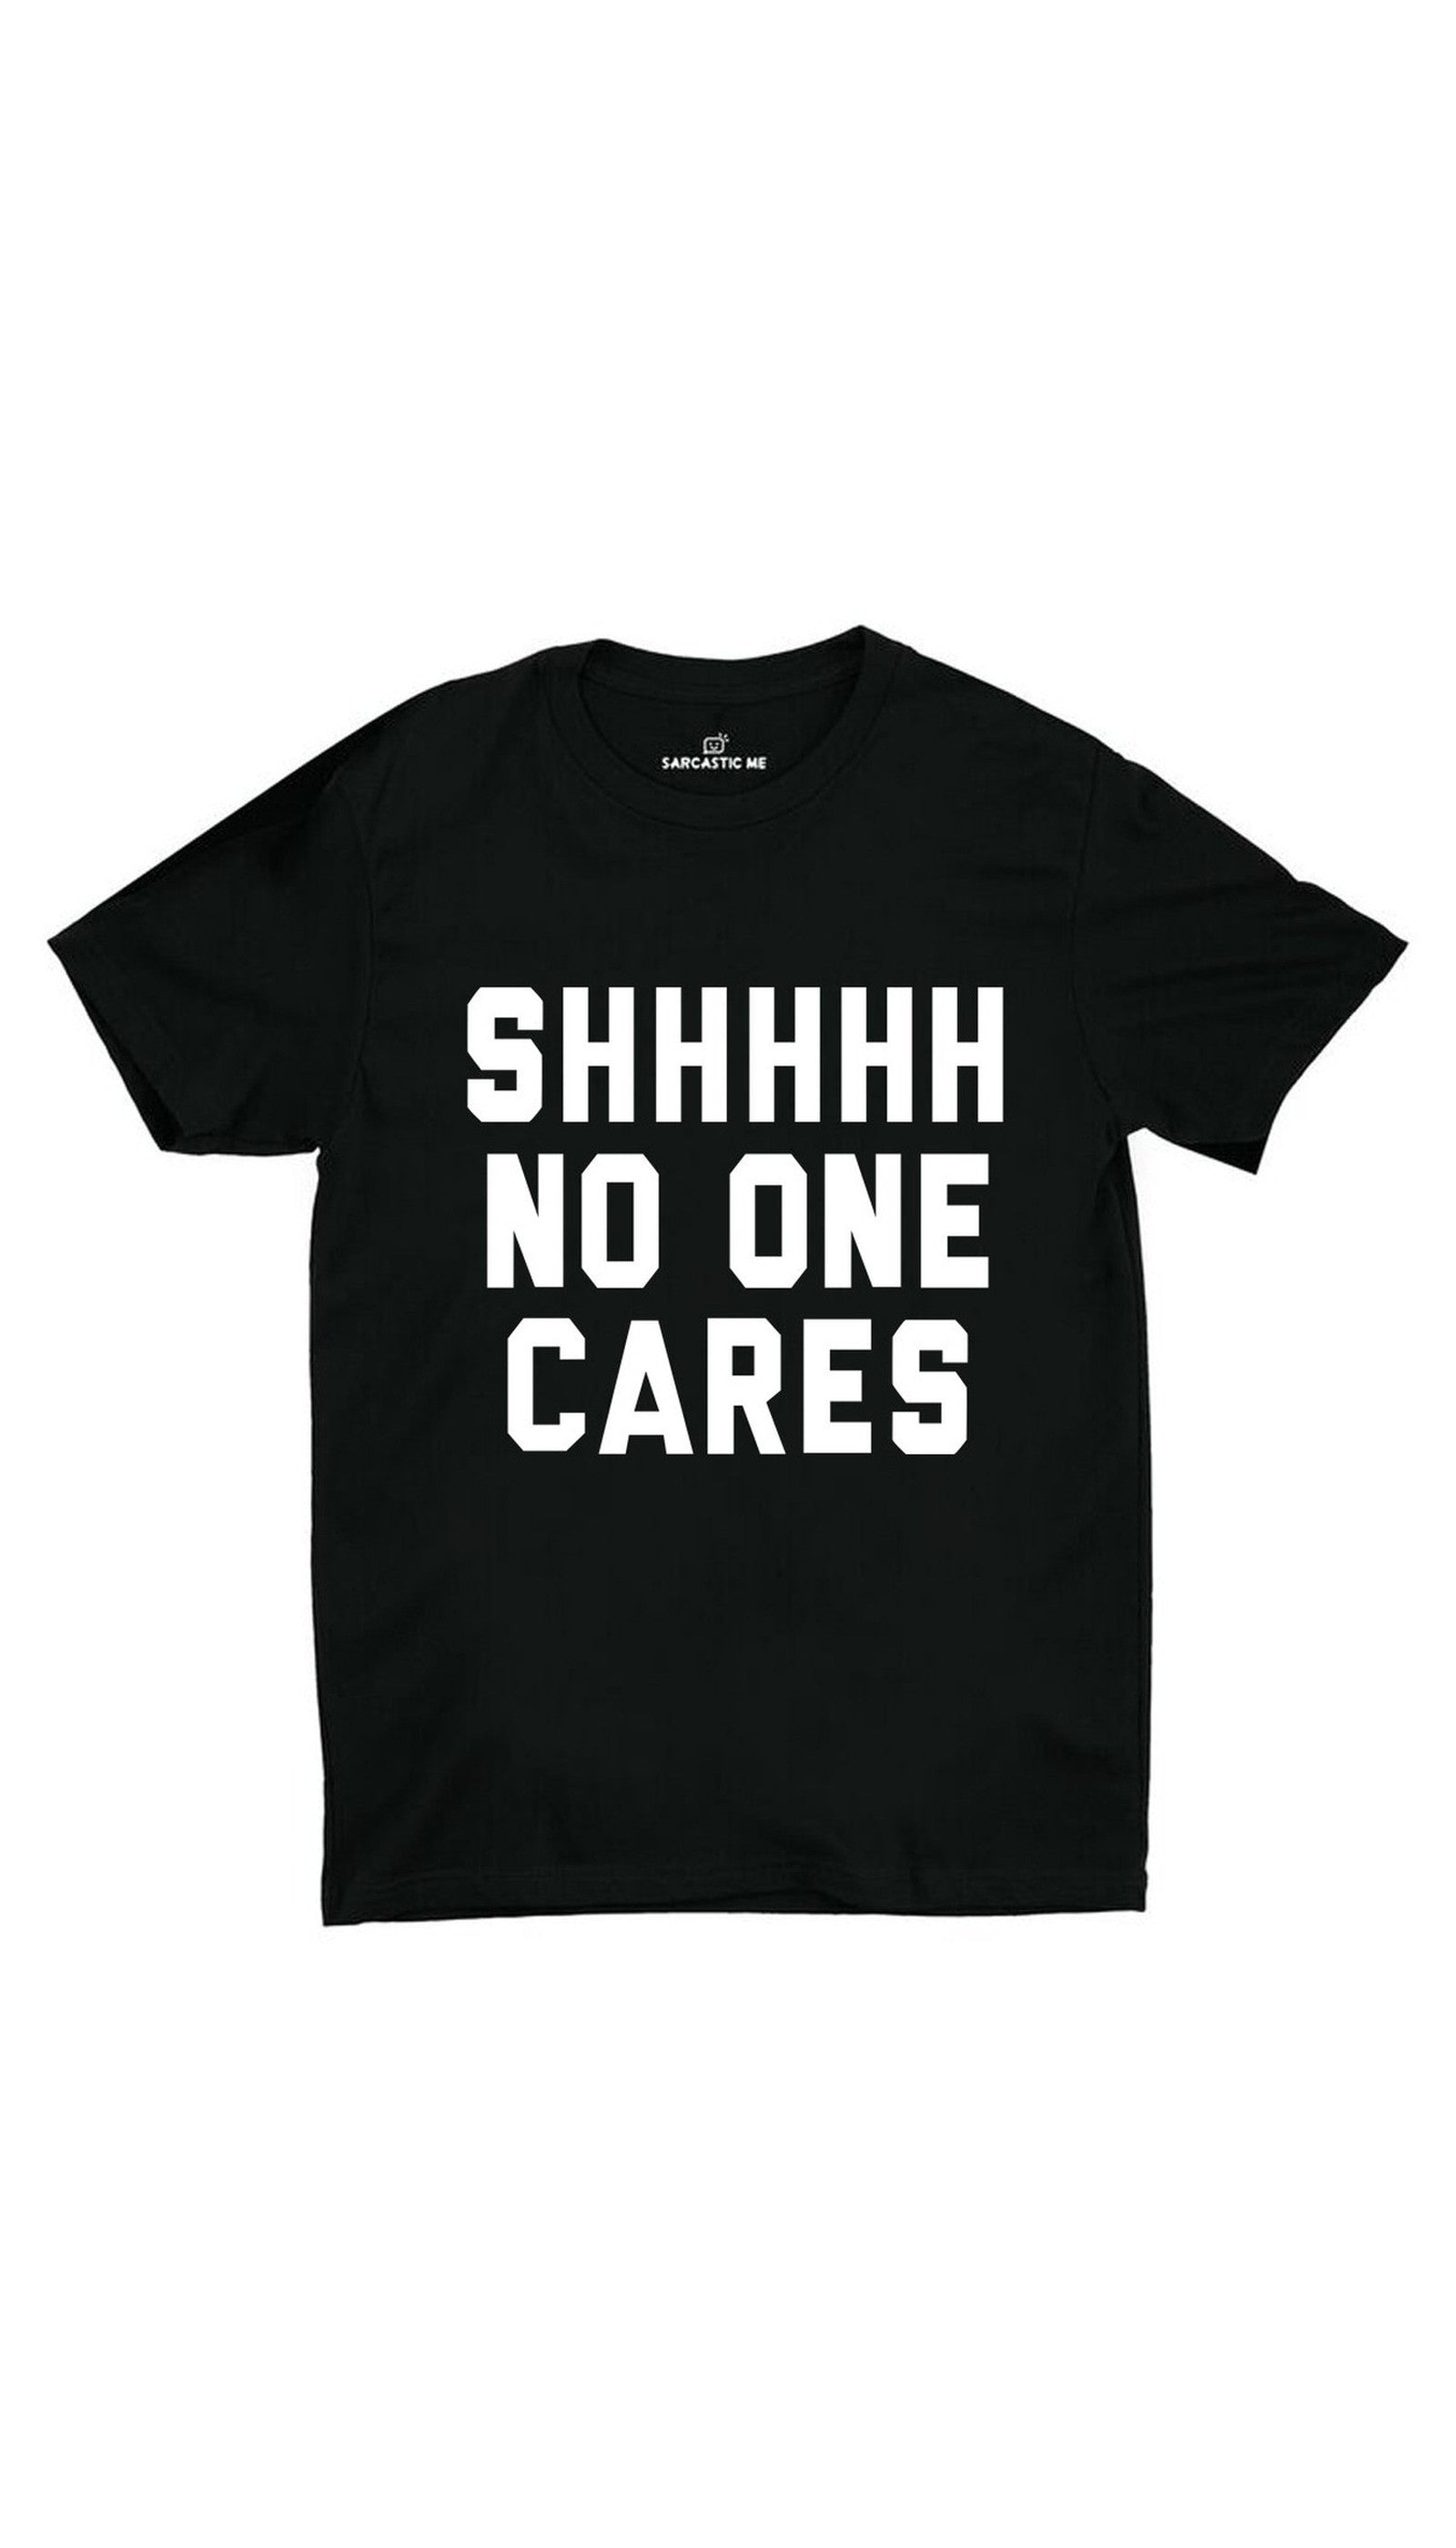 Shhhhh No One Cares Black Unisex T-shirt | Sarcastic ME